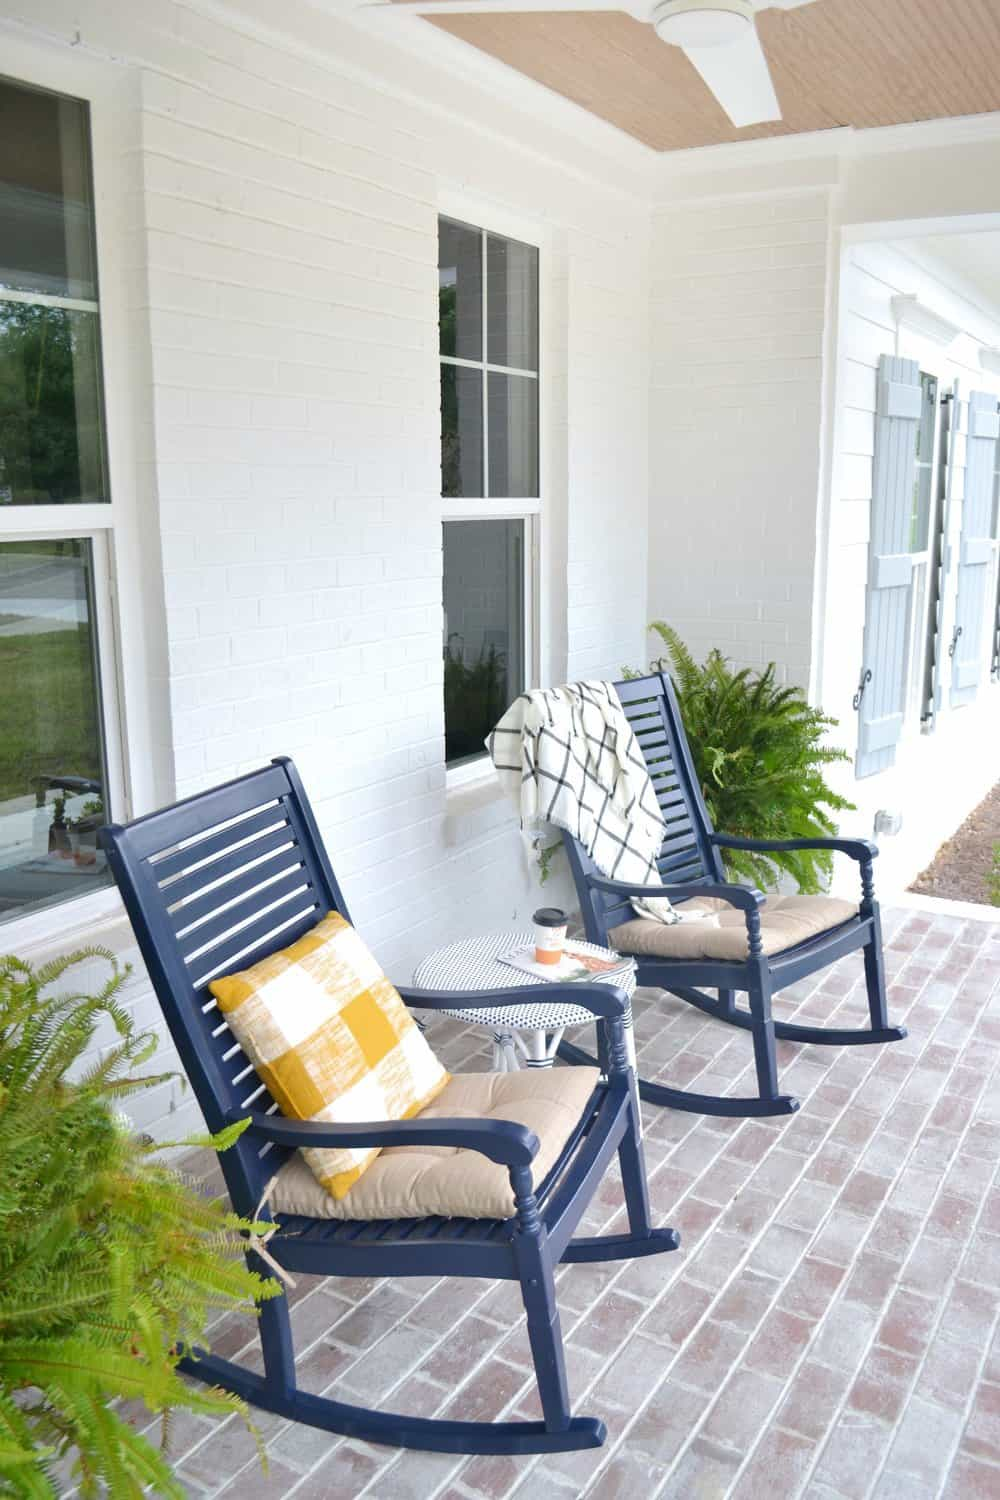 rocking chairs and a yellow pillow